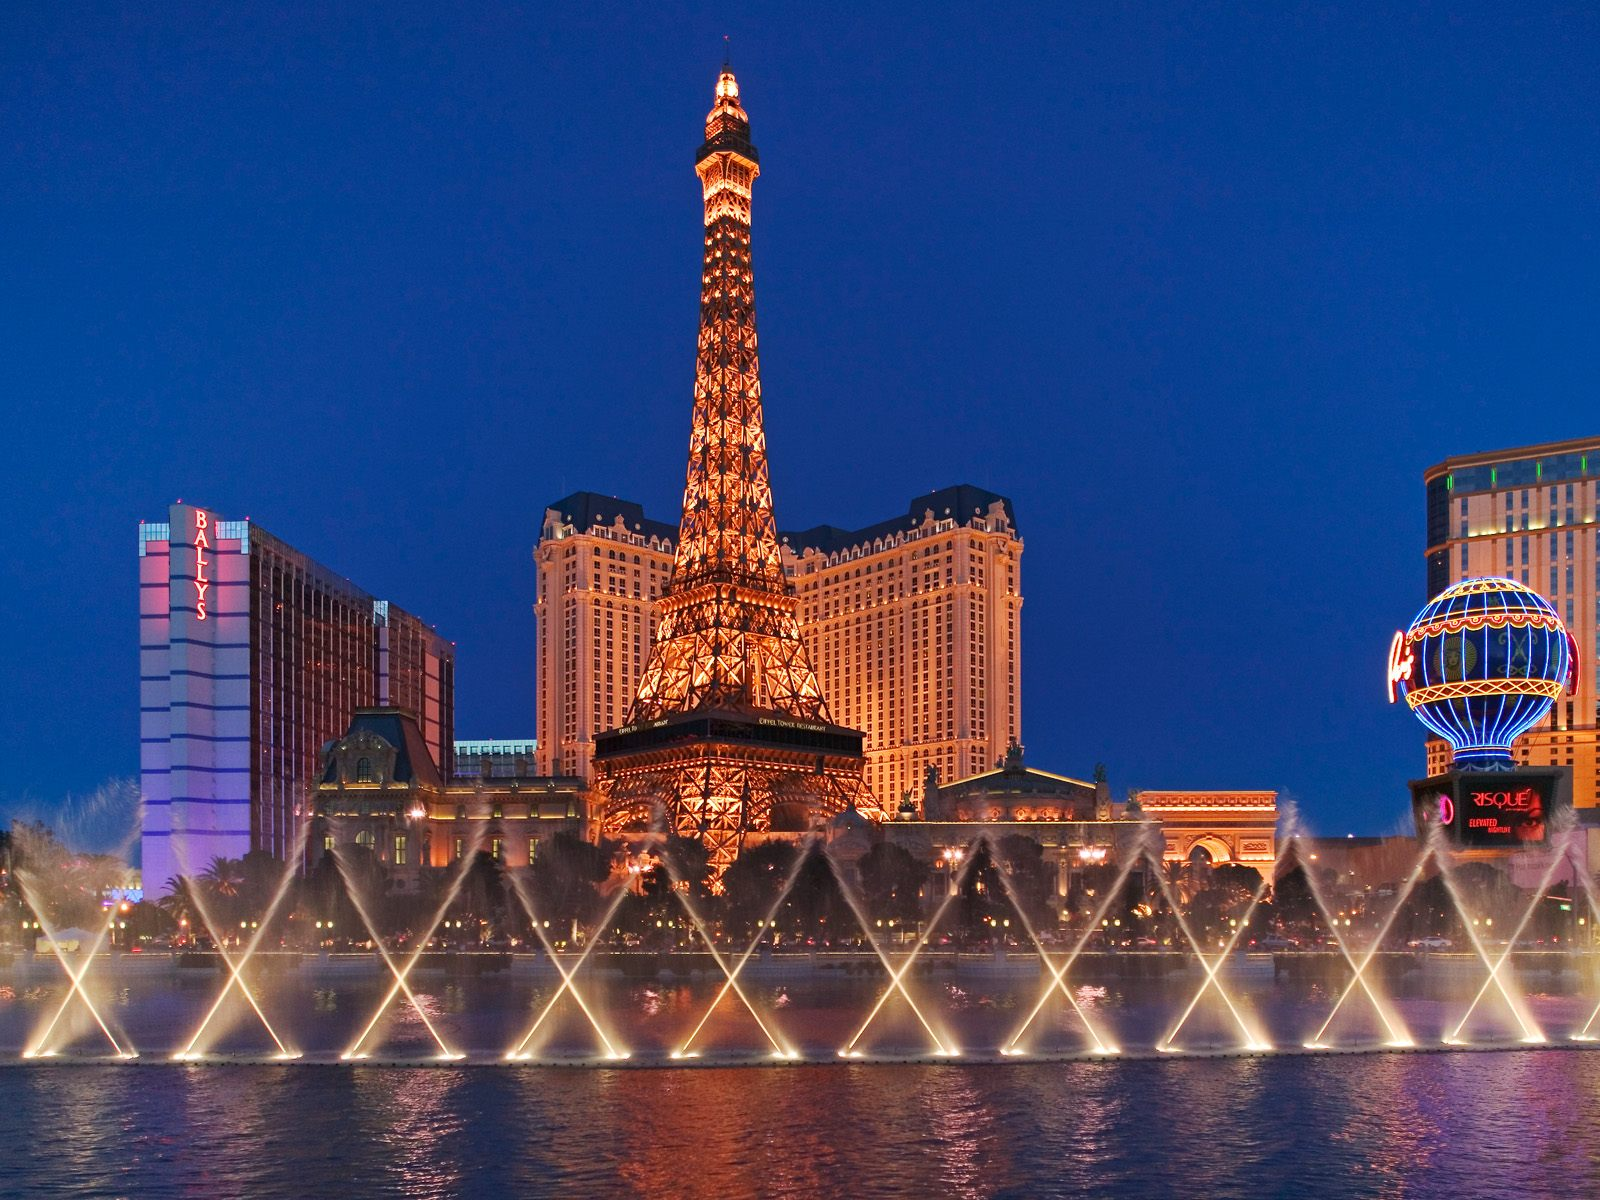 eiffel-tower-as-seen-from-the-bellagio-las-vegas